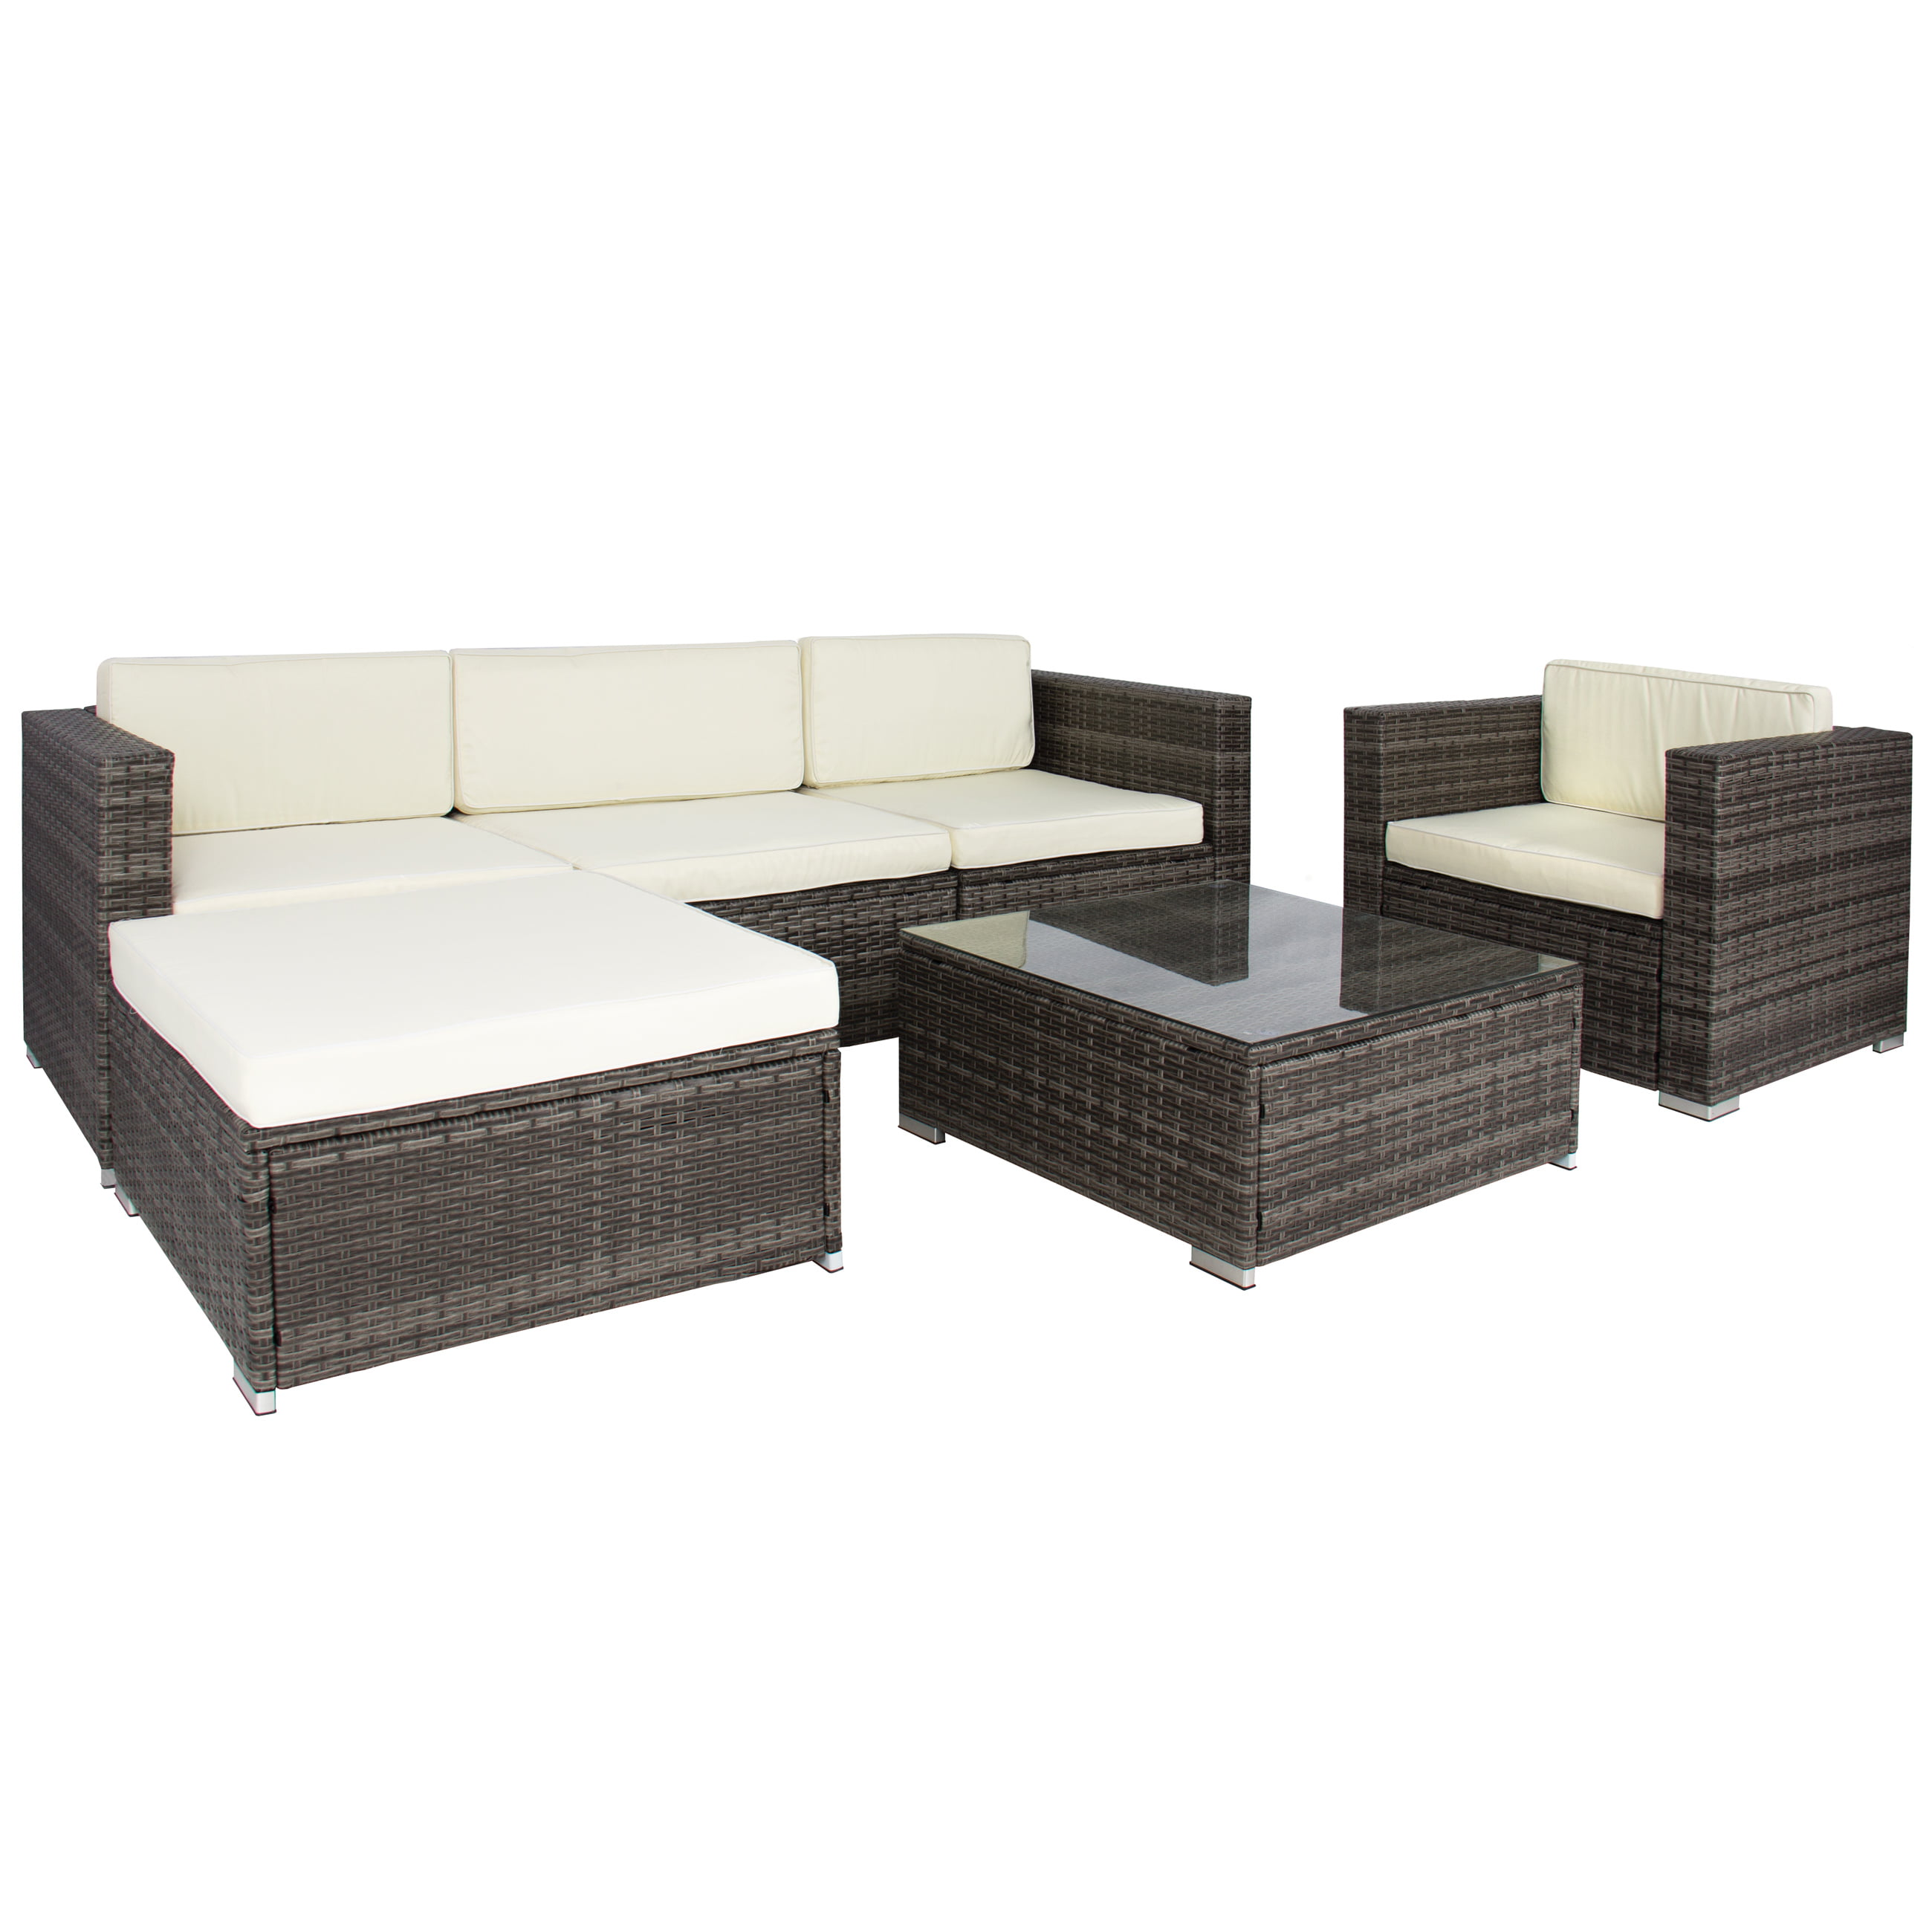 rattan sofa sets 6pc outdoor patio garden wicker furniture. Black Bedroom Furniture Sets. Home Design Ideas